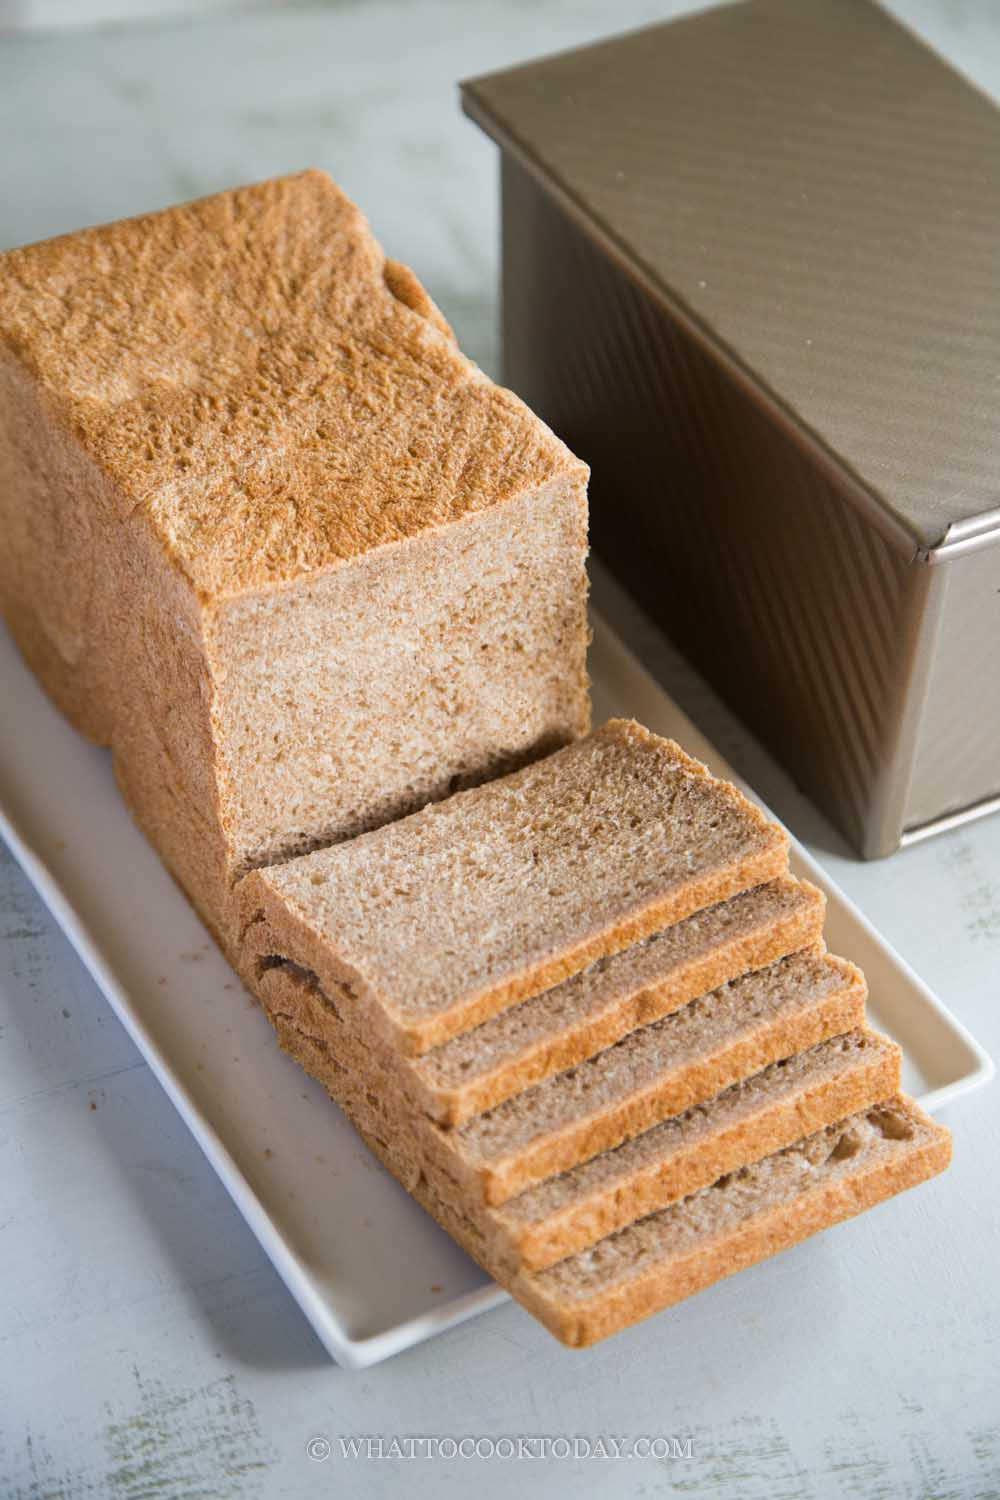 Soft Wholemeal /Whole Wheat Pullman Loaf (Pain De Mie)